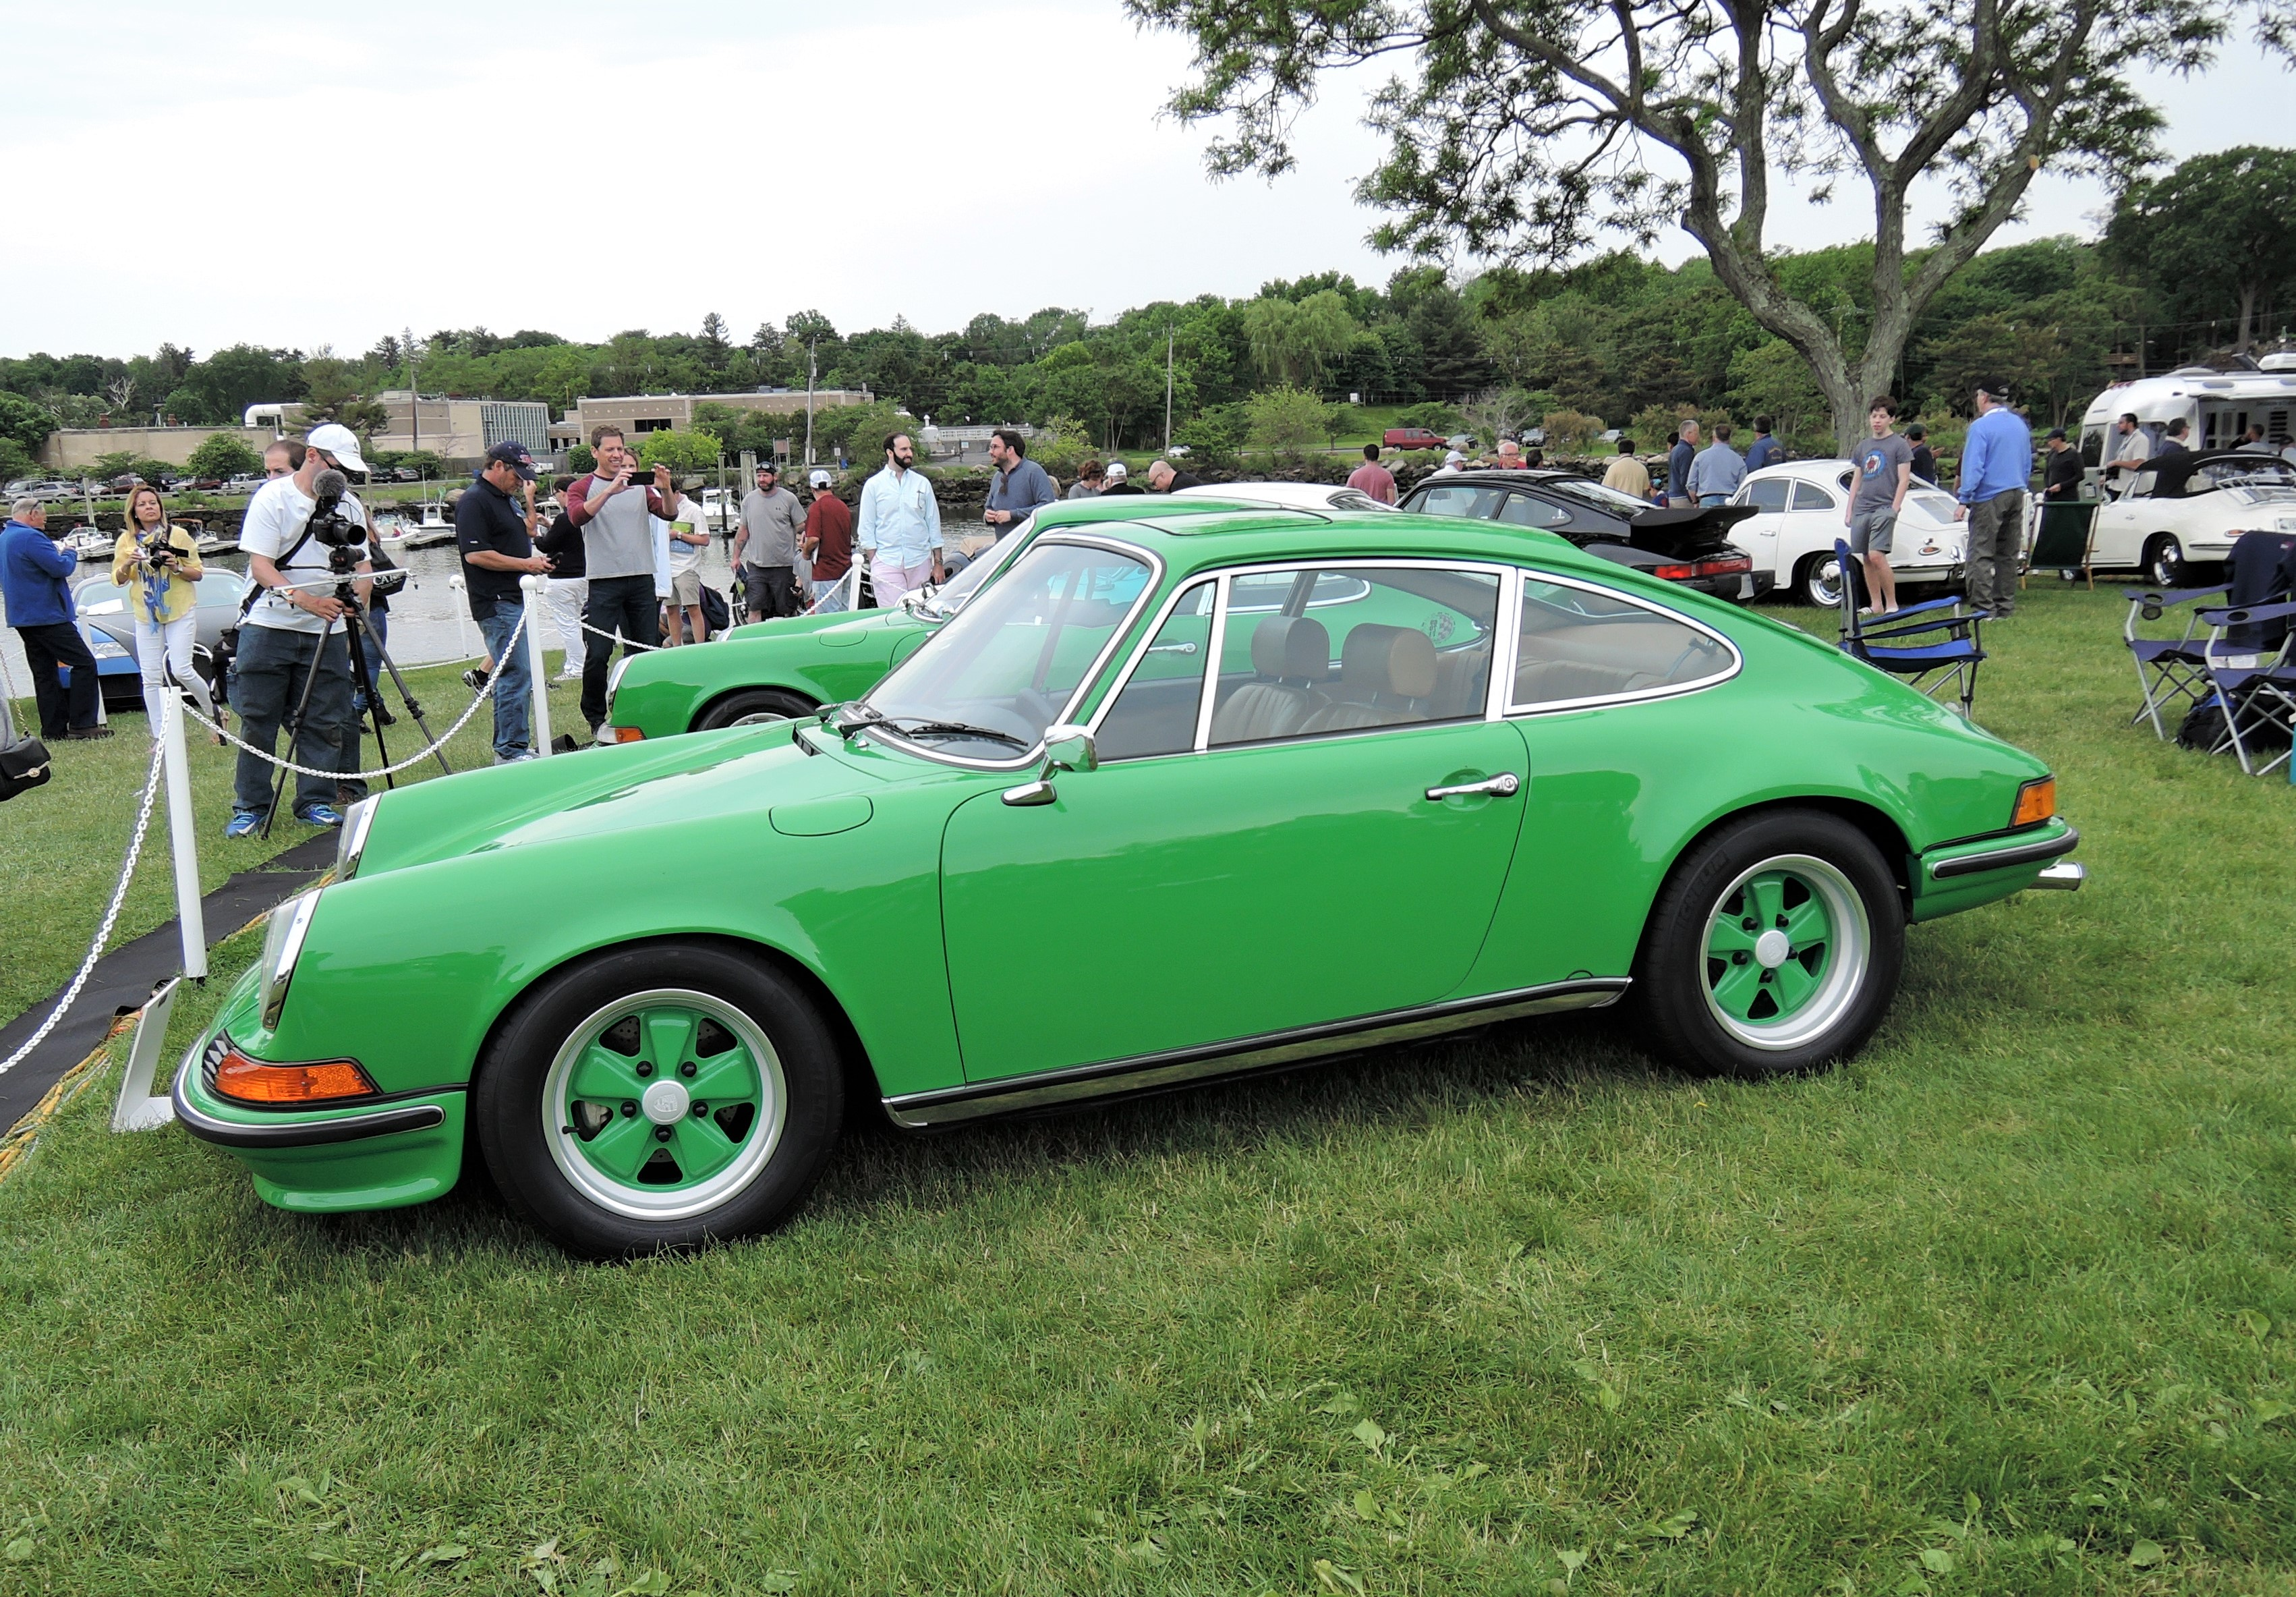 green 1972 Porsche 911S Coupe - Greenwich Concours d'Elegance 2017